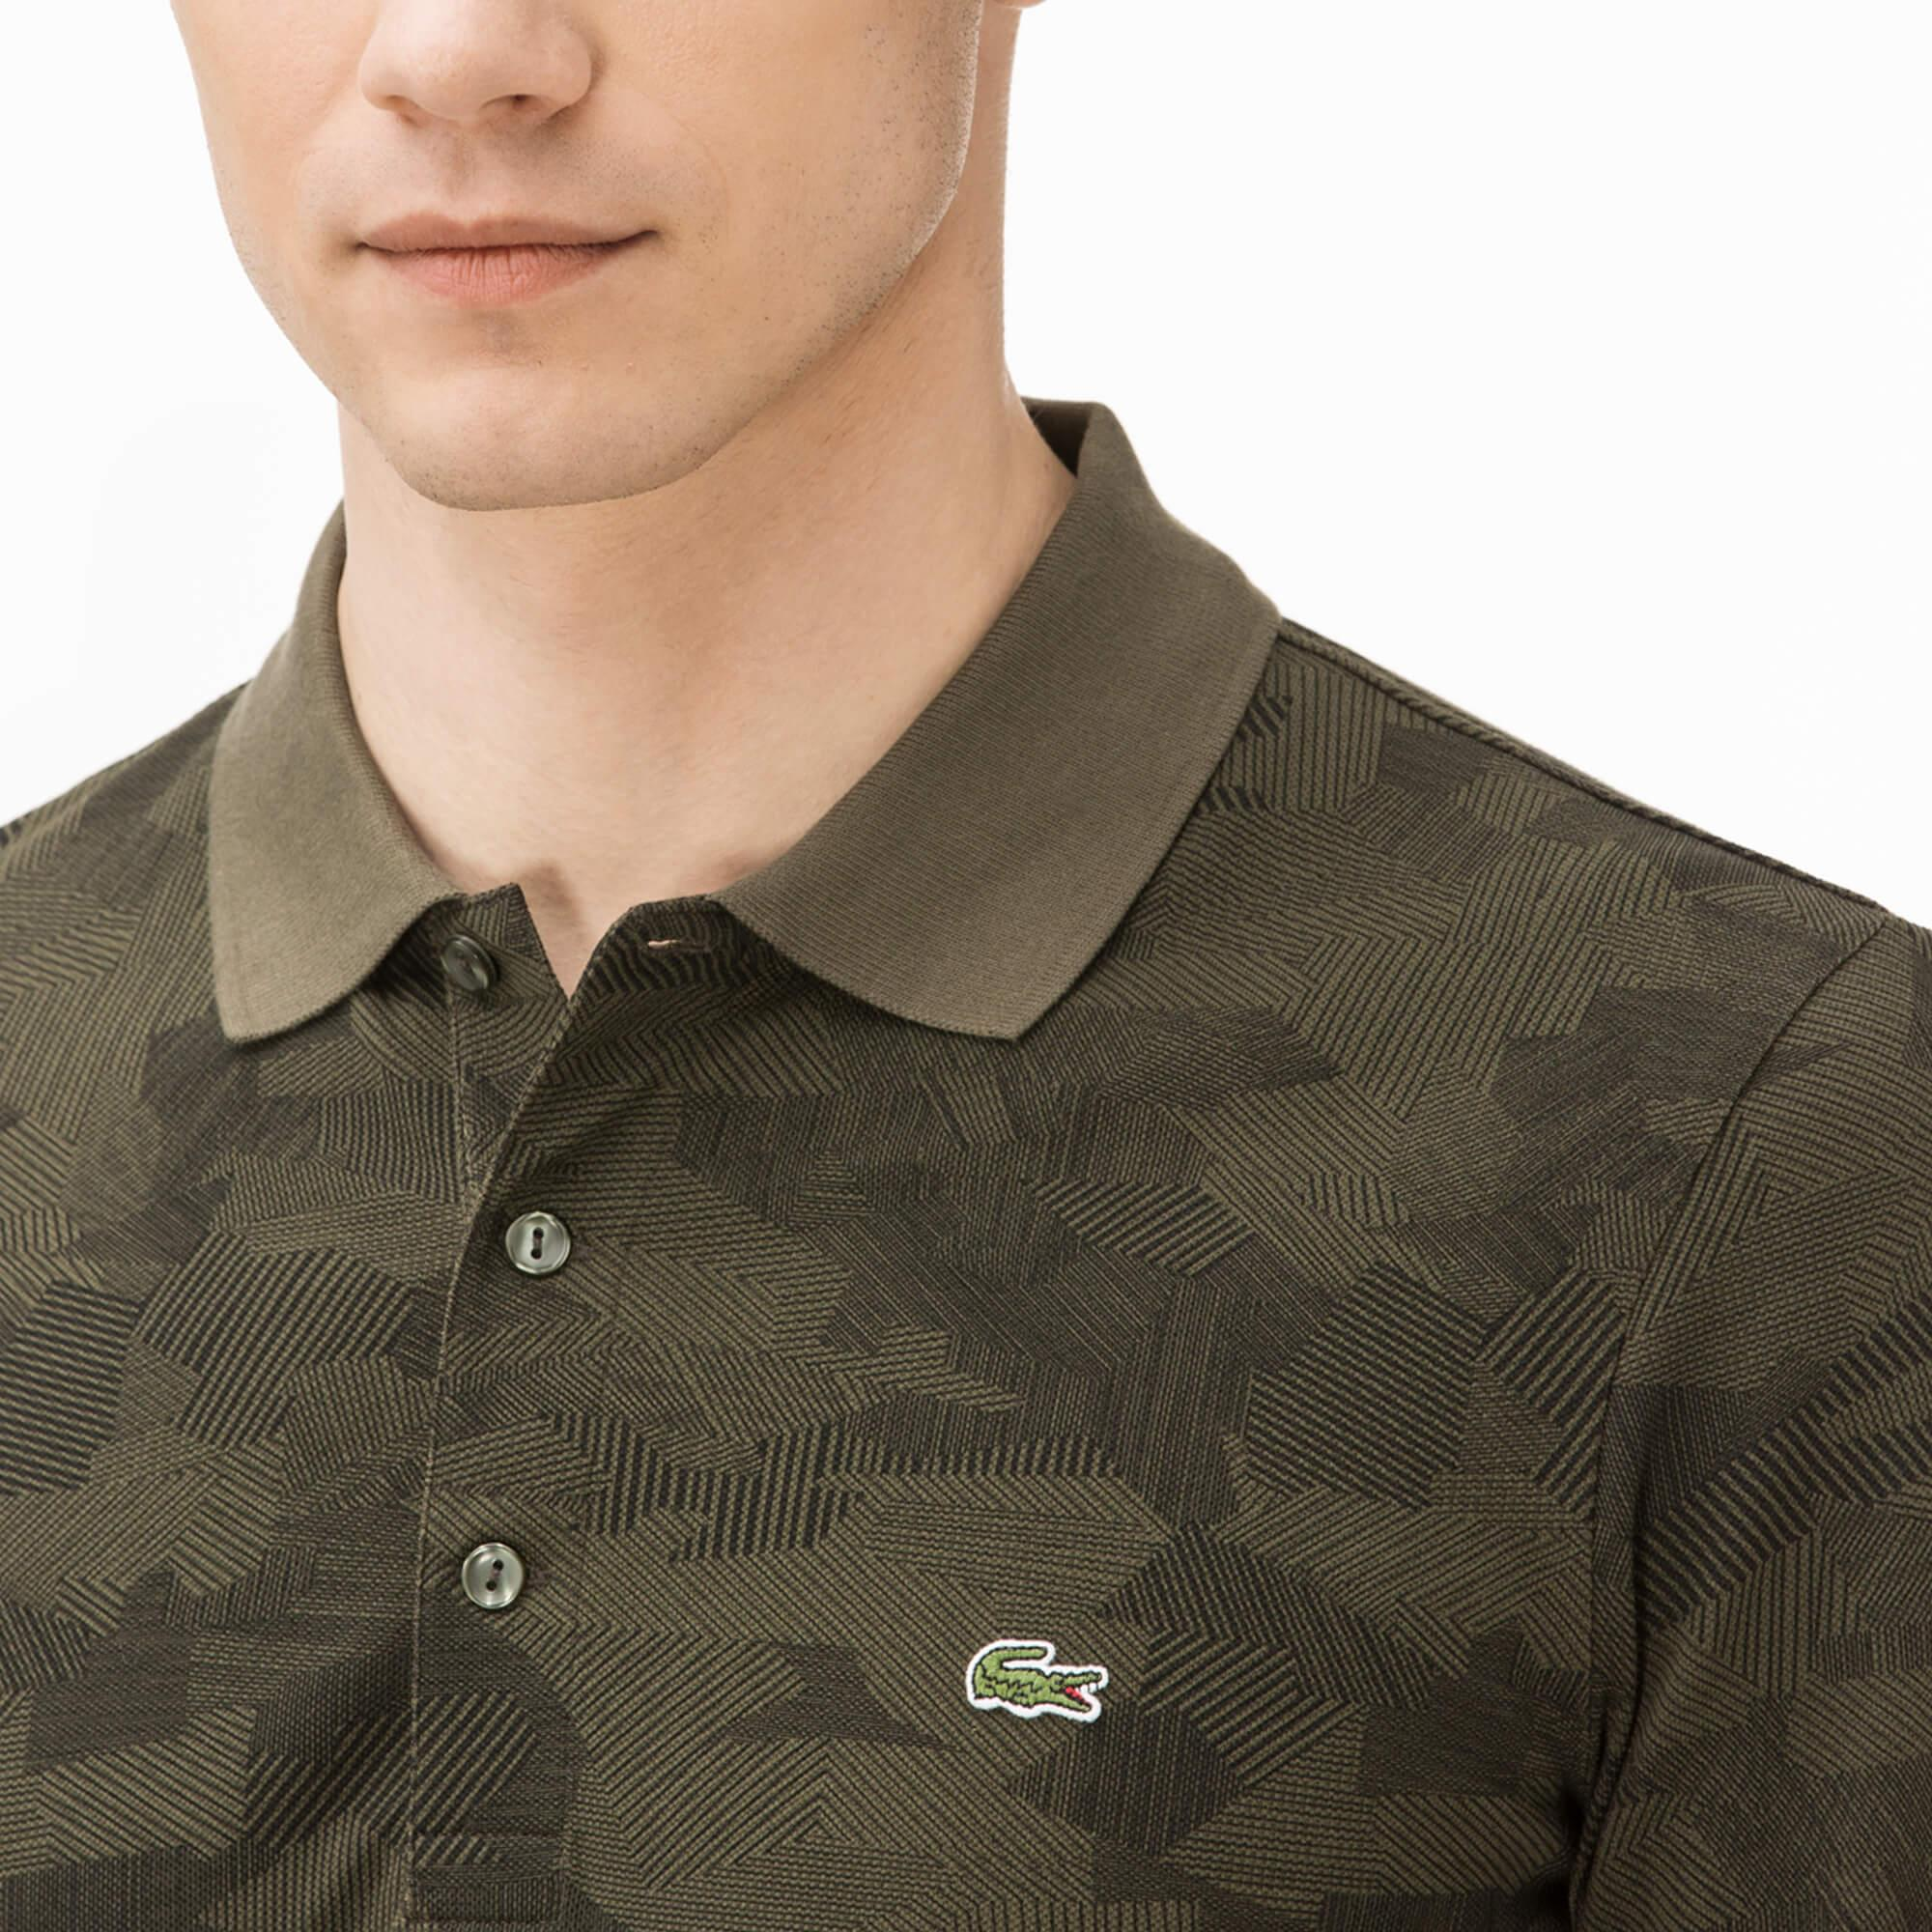 Lacoste Men's Regular Fit Merino Wool Polo